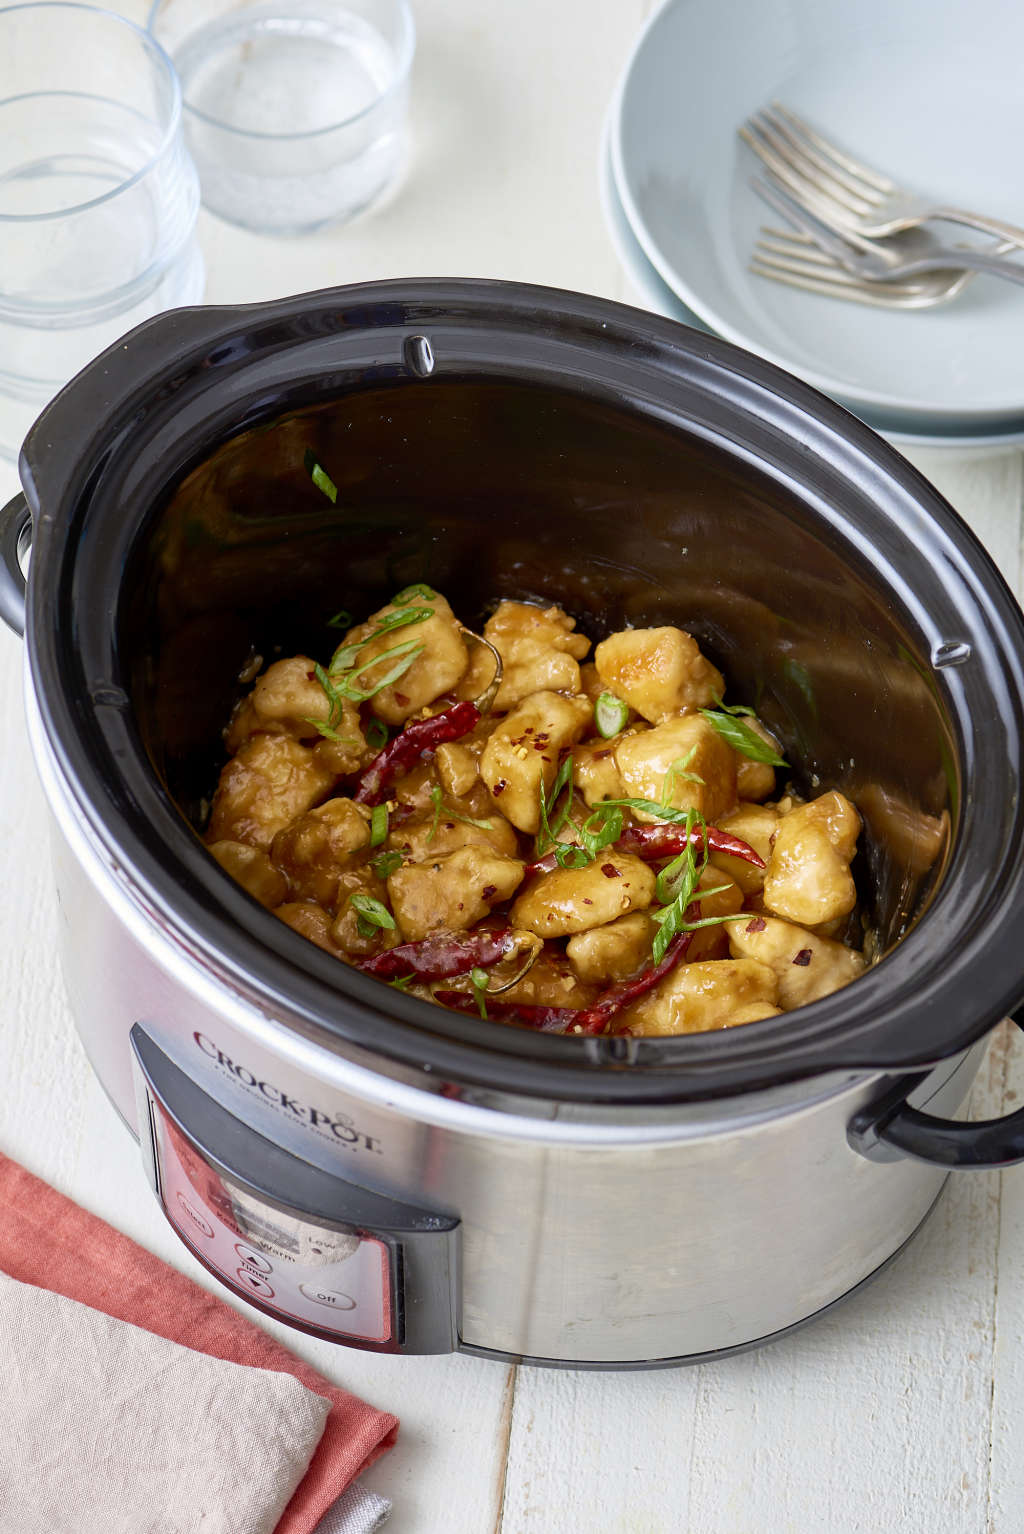 Our Most Popular Slow Cooker Recipes of 2017